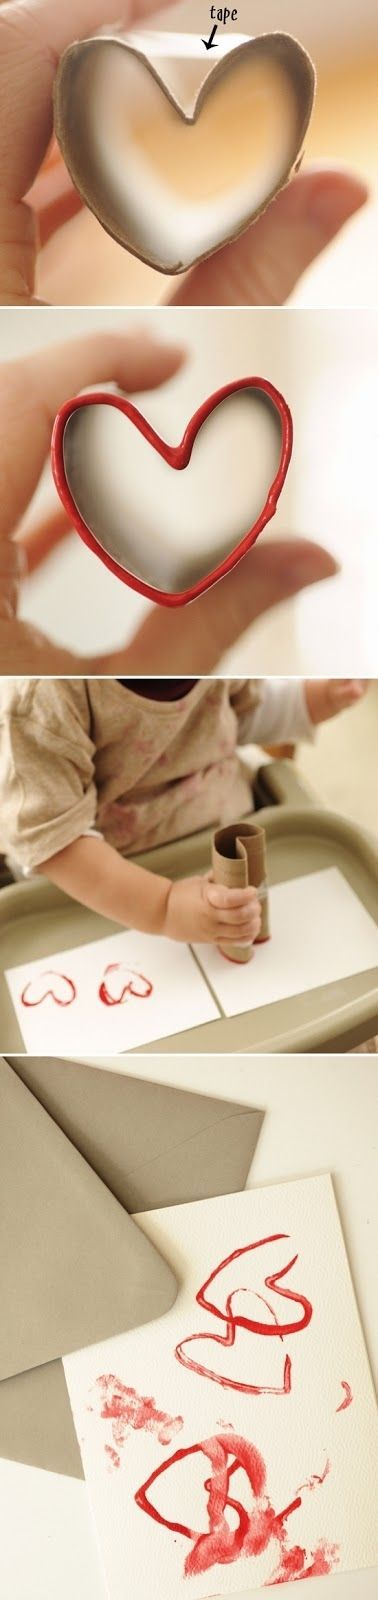 Toilet Paper Roll Stamps - DIY Ideas 4 Home